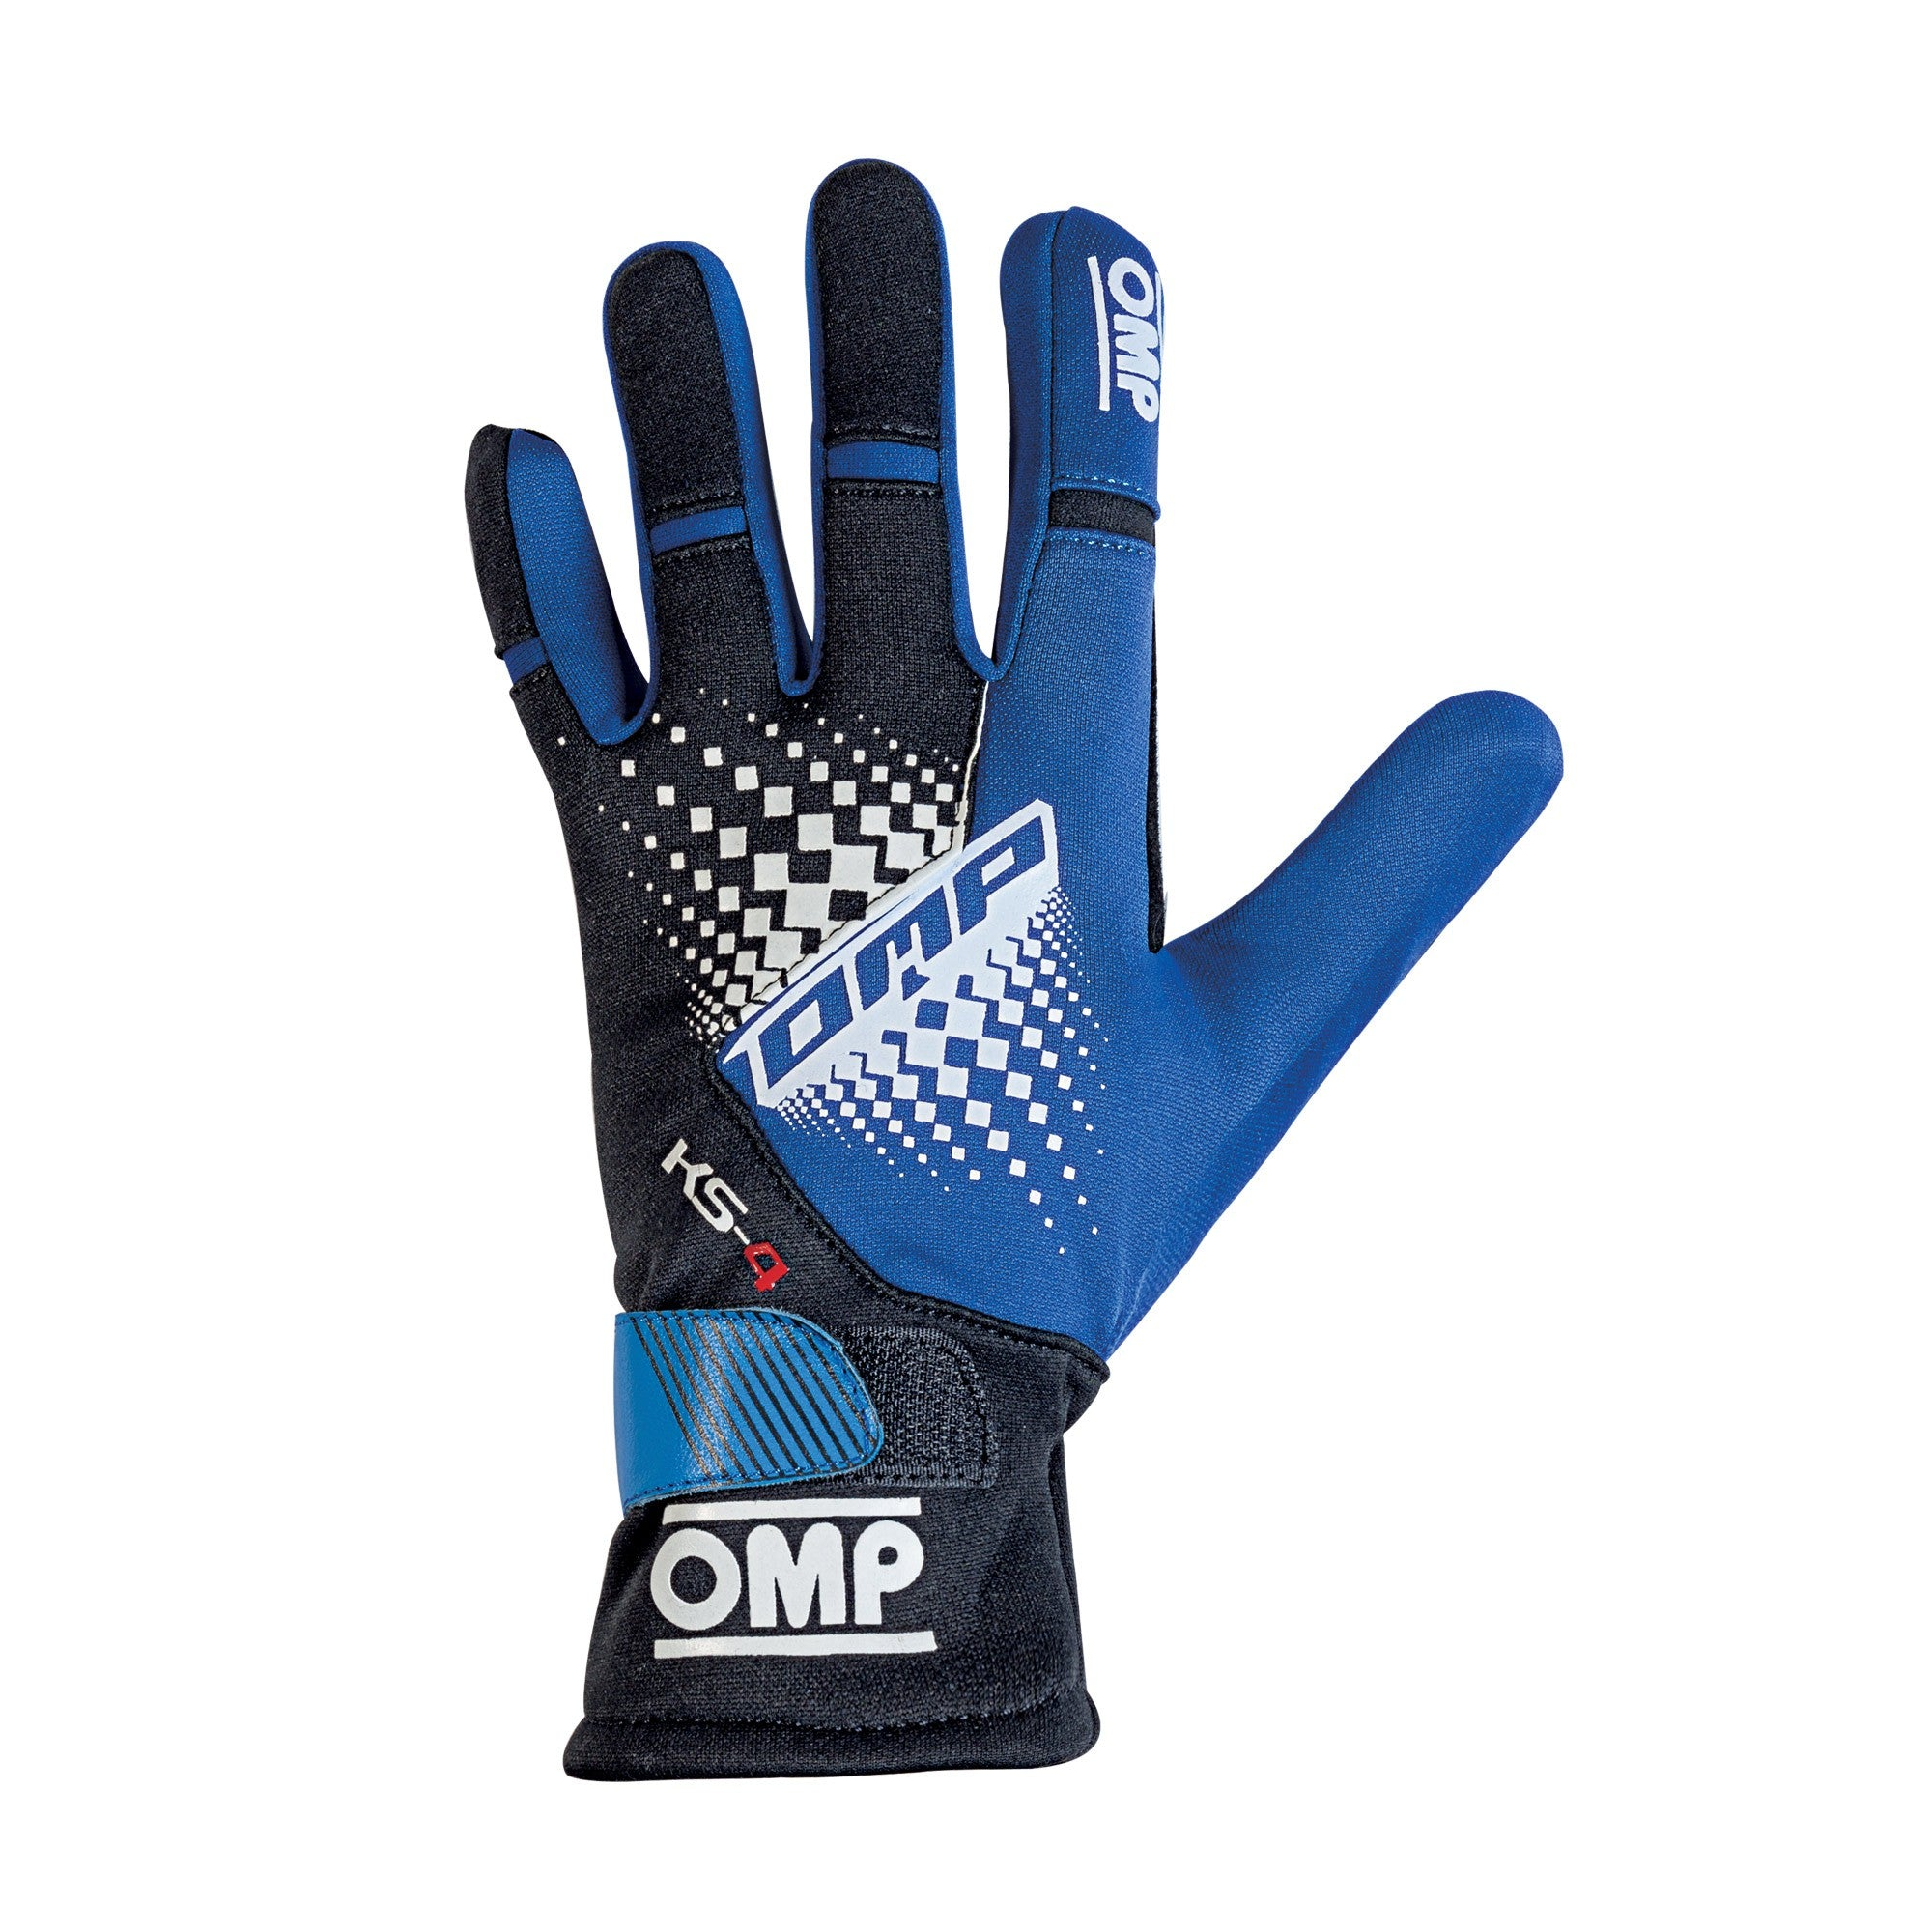 OMP KS-4 Gloves - Saferacer